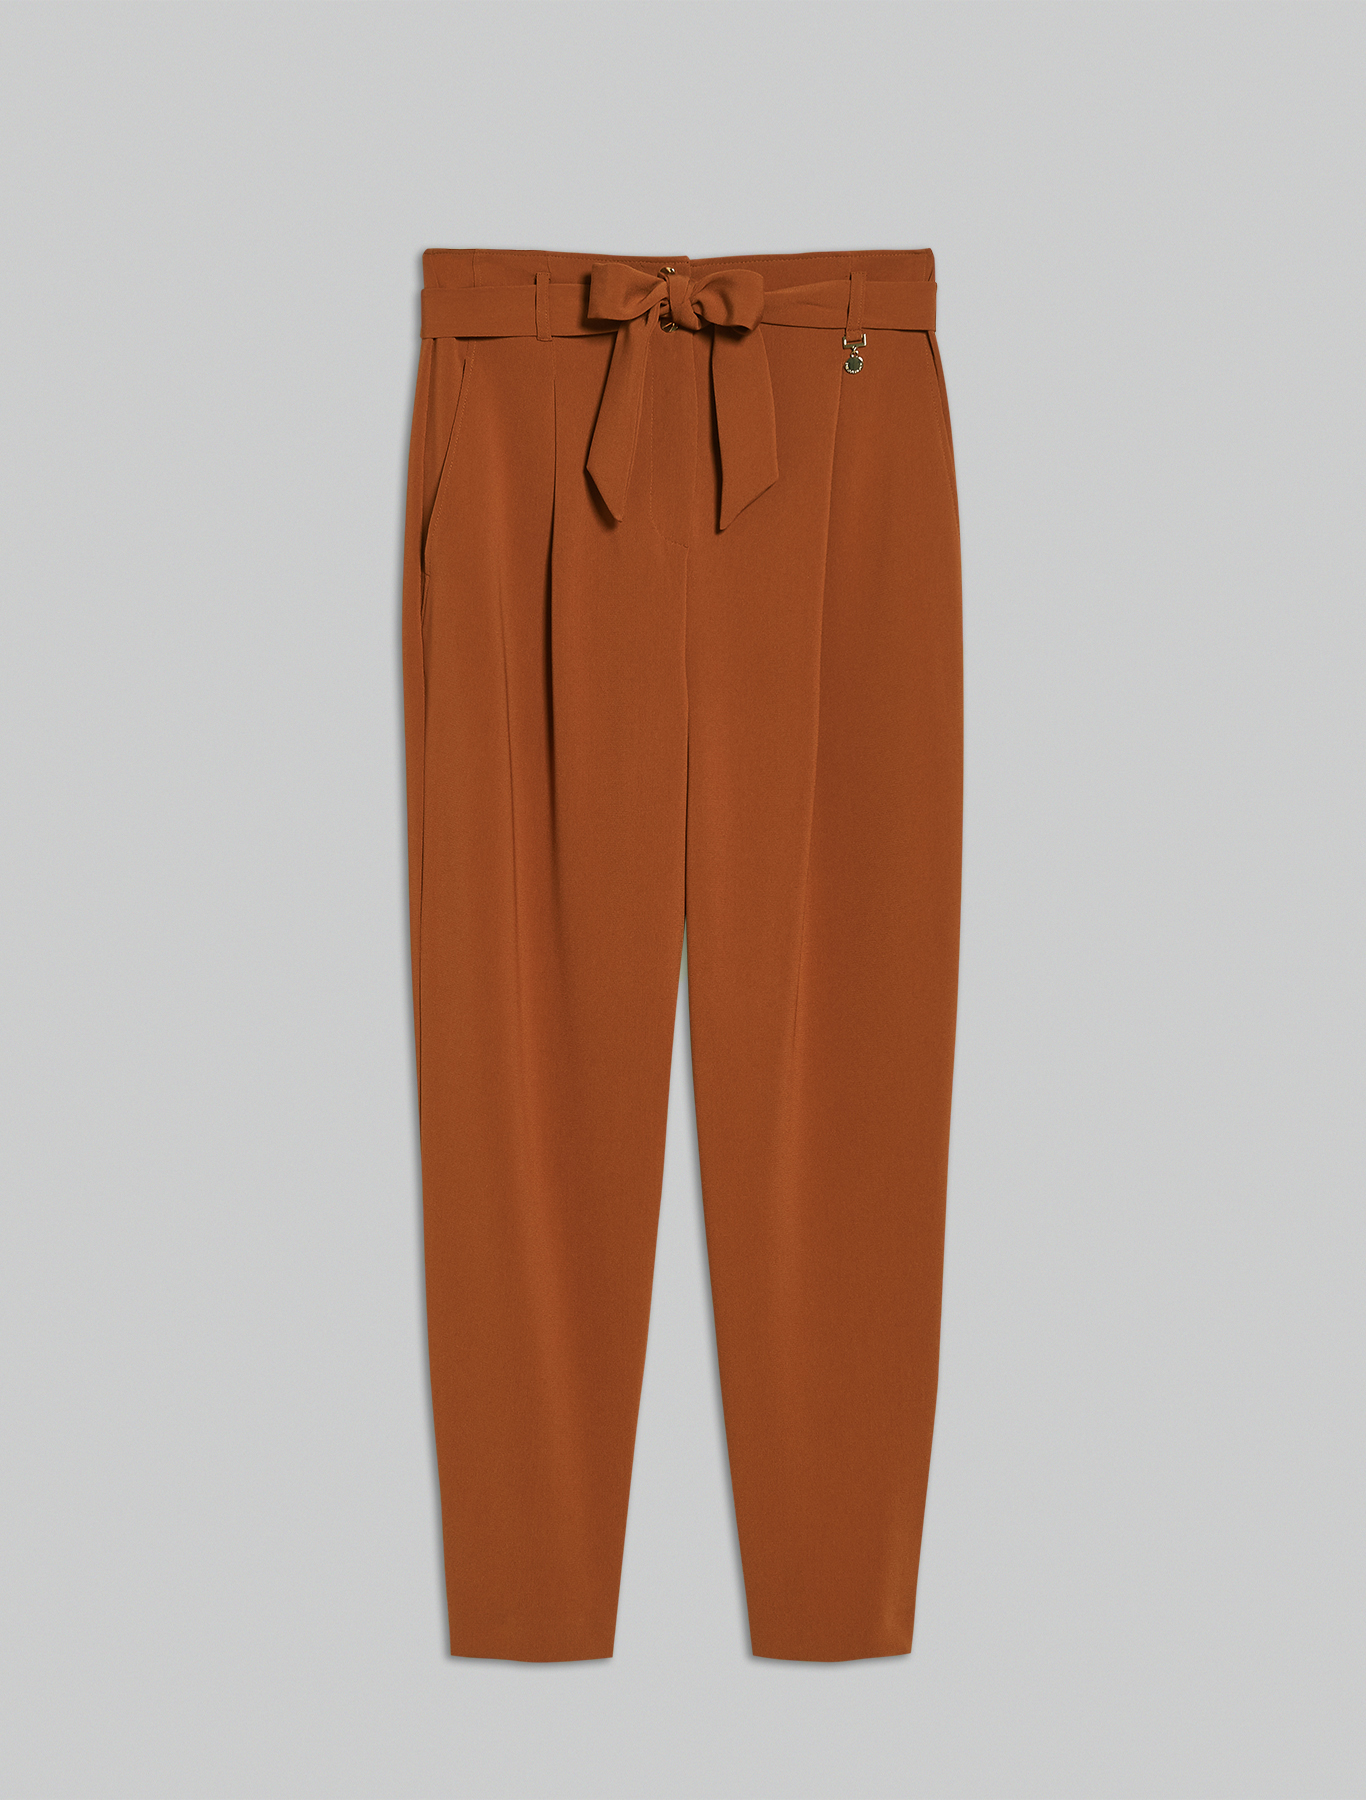 Flowing belted trousers - bronze - pennyblack